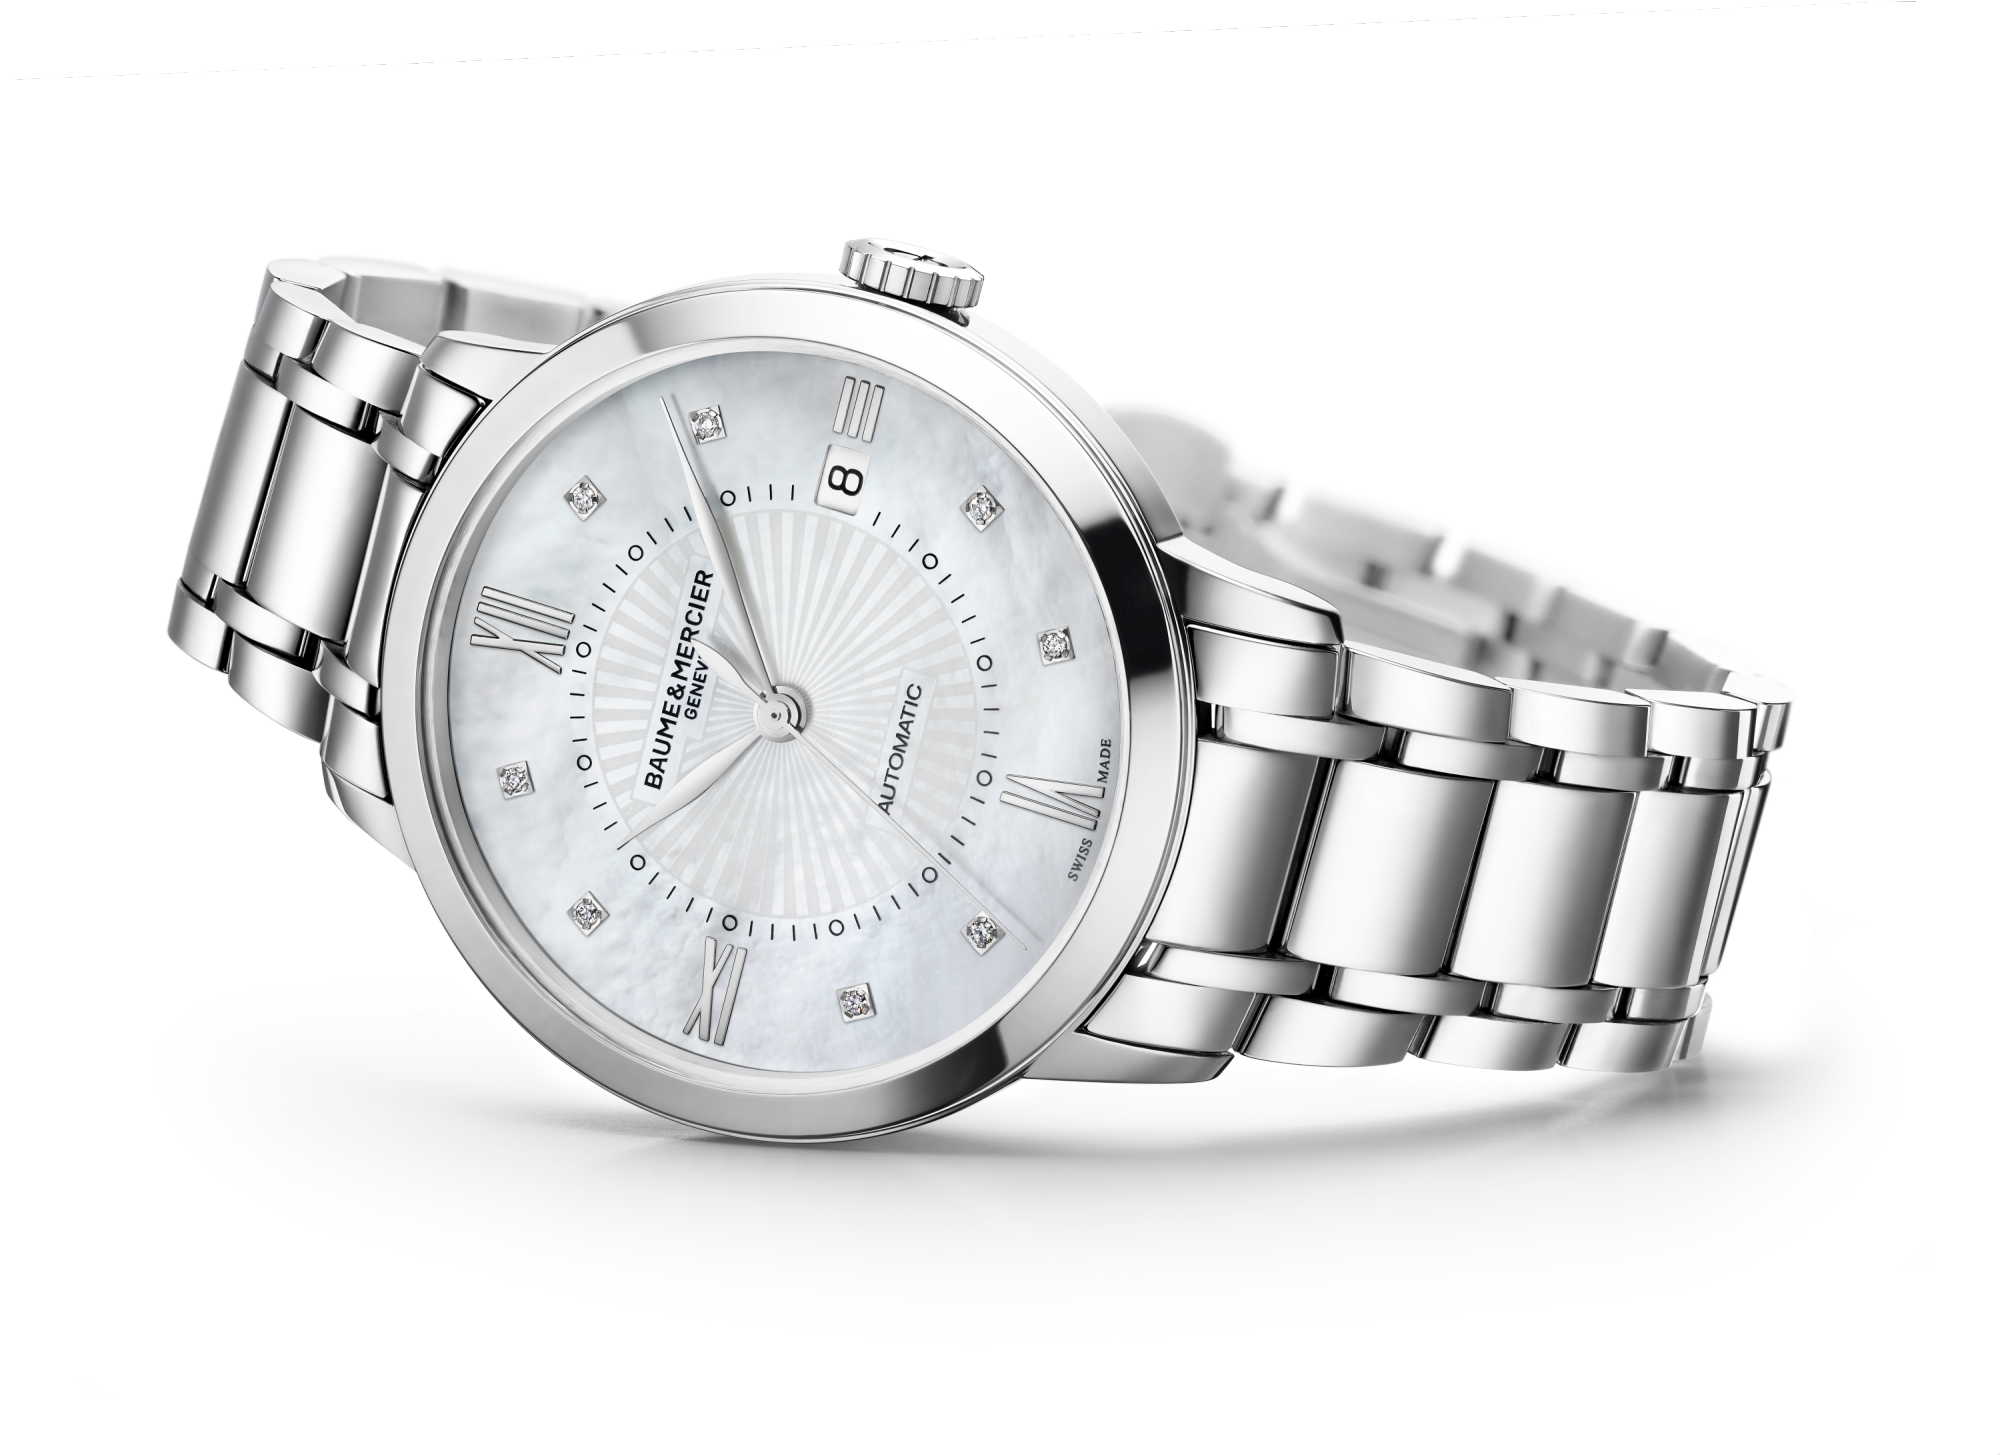 Classima 10221 Watch for ladies | Check Prices on Baume & Mercier 3|4 -